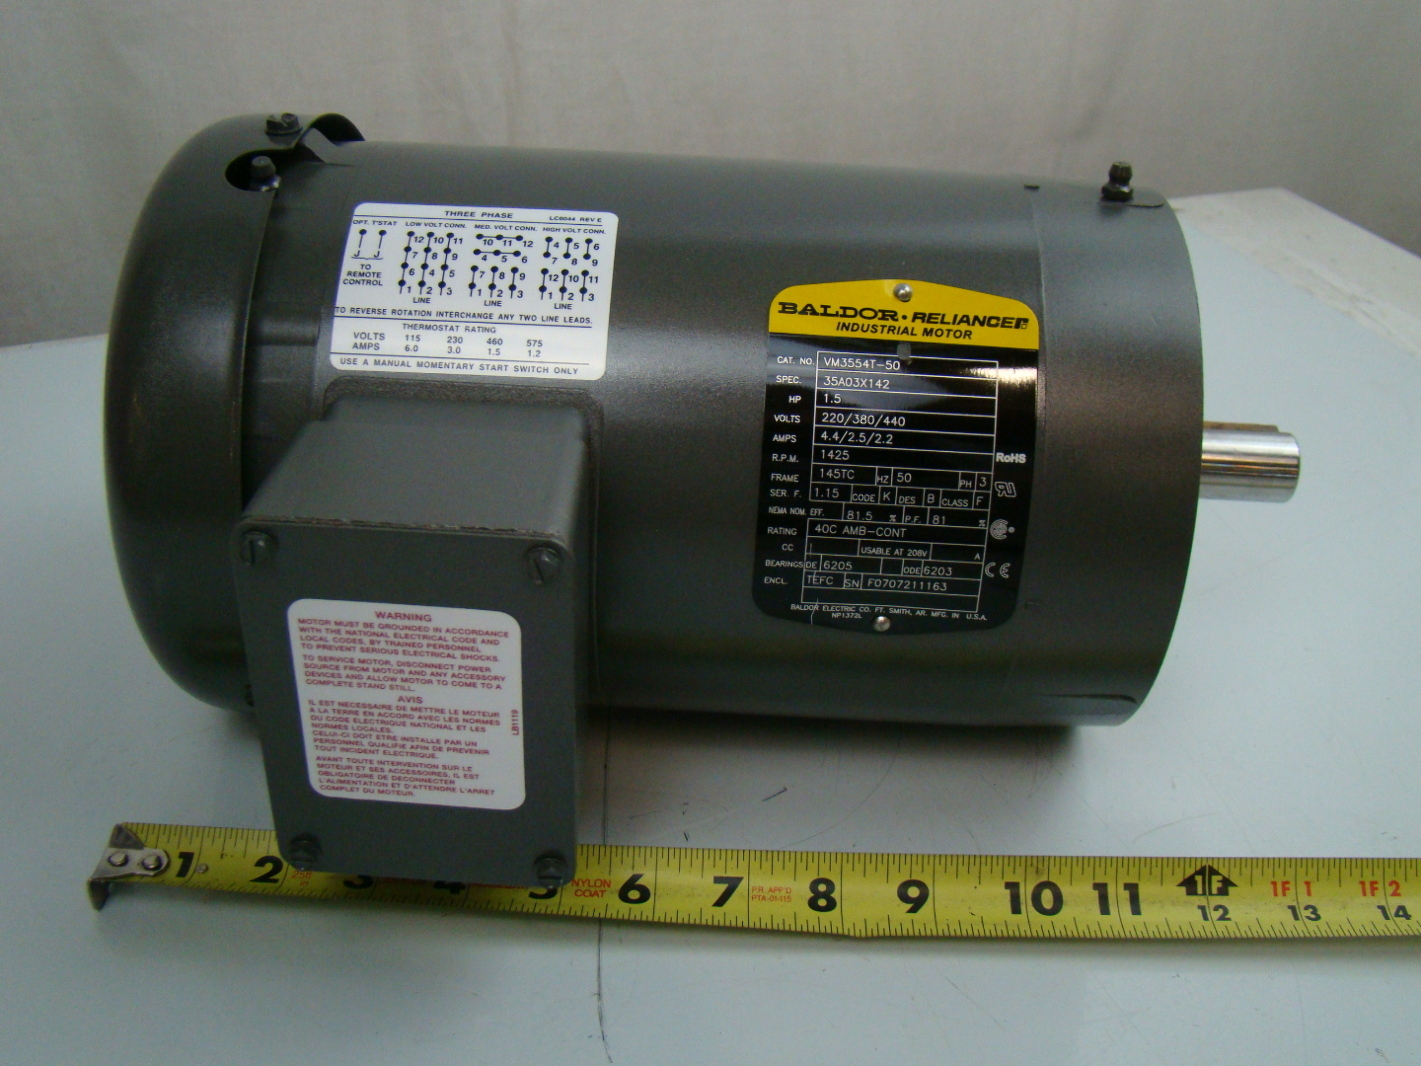 Baldor 1 5 Hp 1425 Rpm Electric Motor Vm3554t 50 Joseph